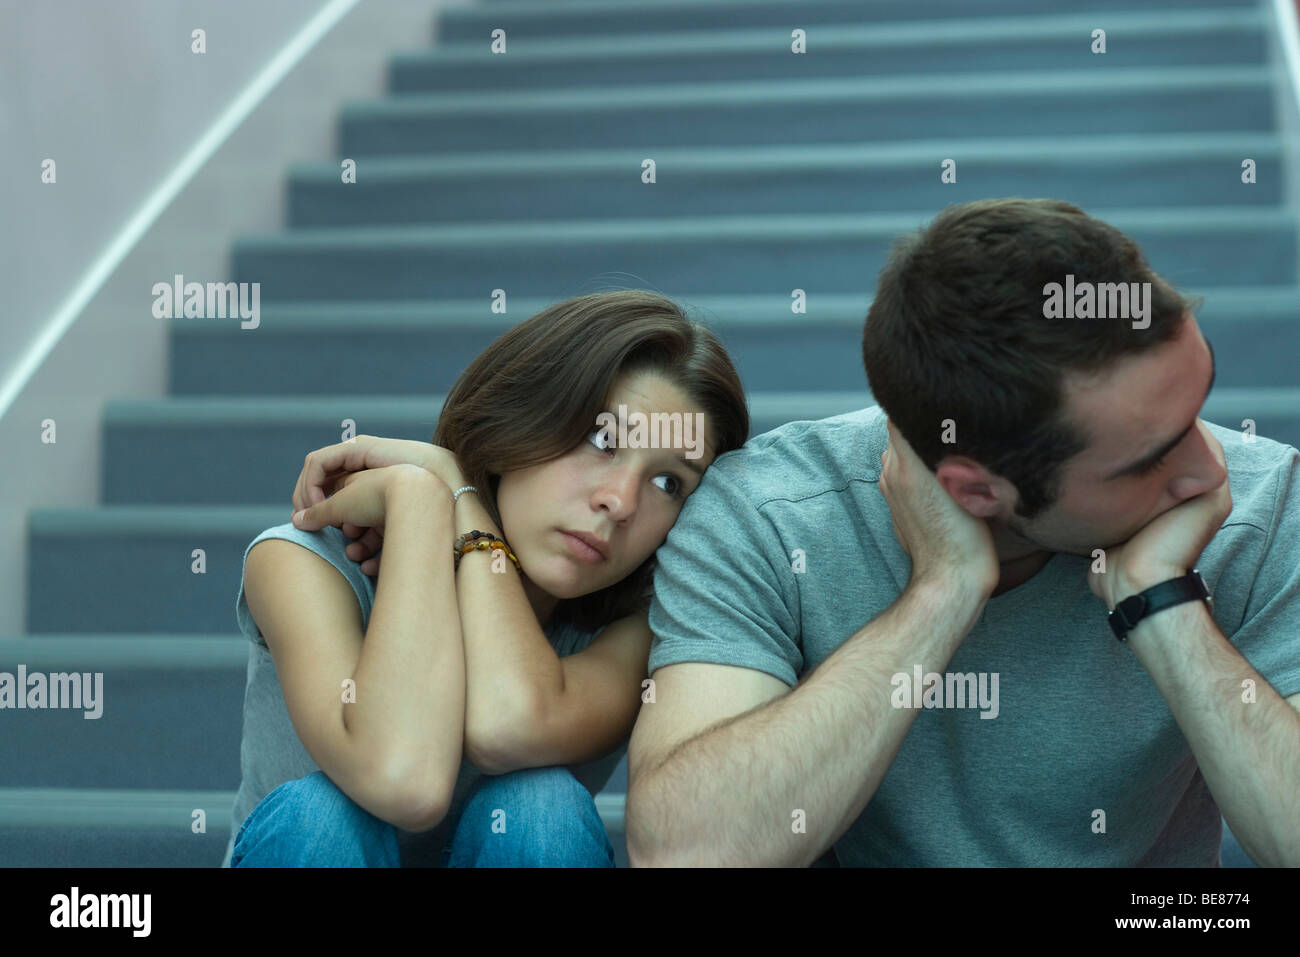 Young couple sitting side by side on stairs, woman leaning head on man's shoulder, man looking away - Stock Image